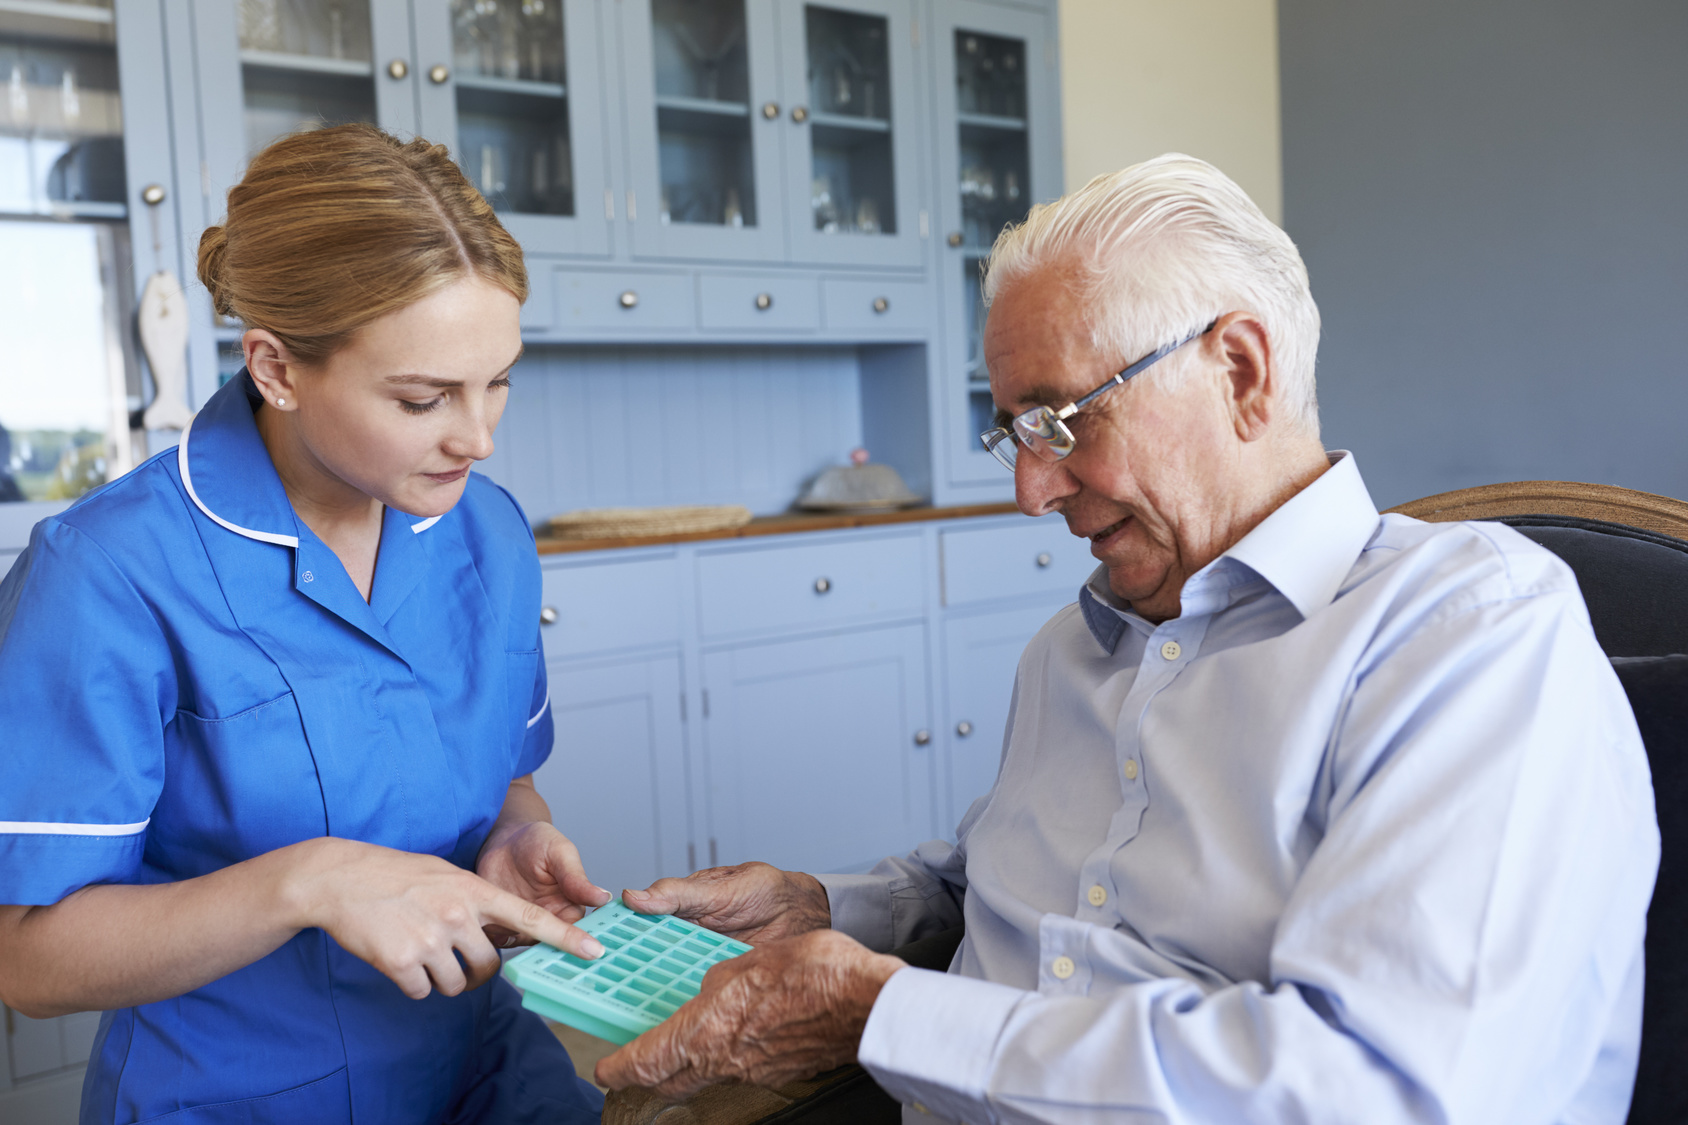 Assisting Hands Home Care - Deerfield & Surrounding Areas - Deerfield, IL 60015 - (847)595-1222 | ShowMeLocal.com